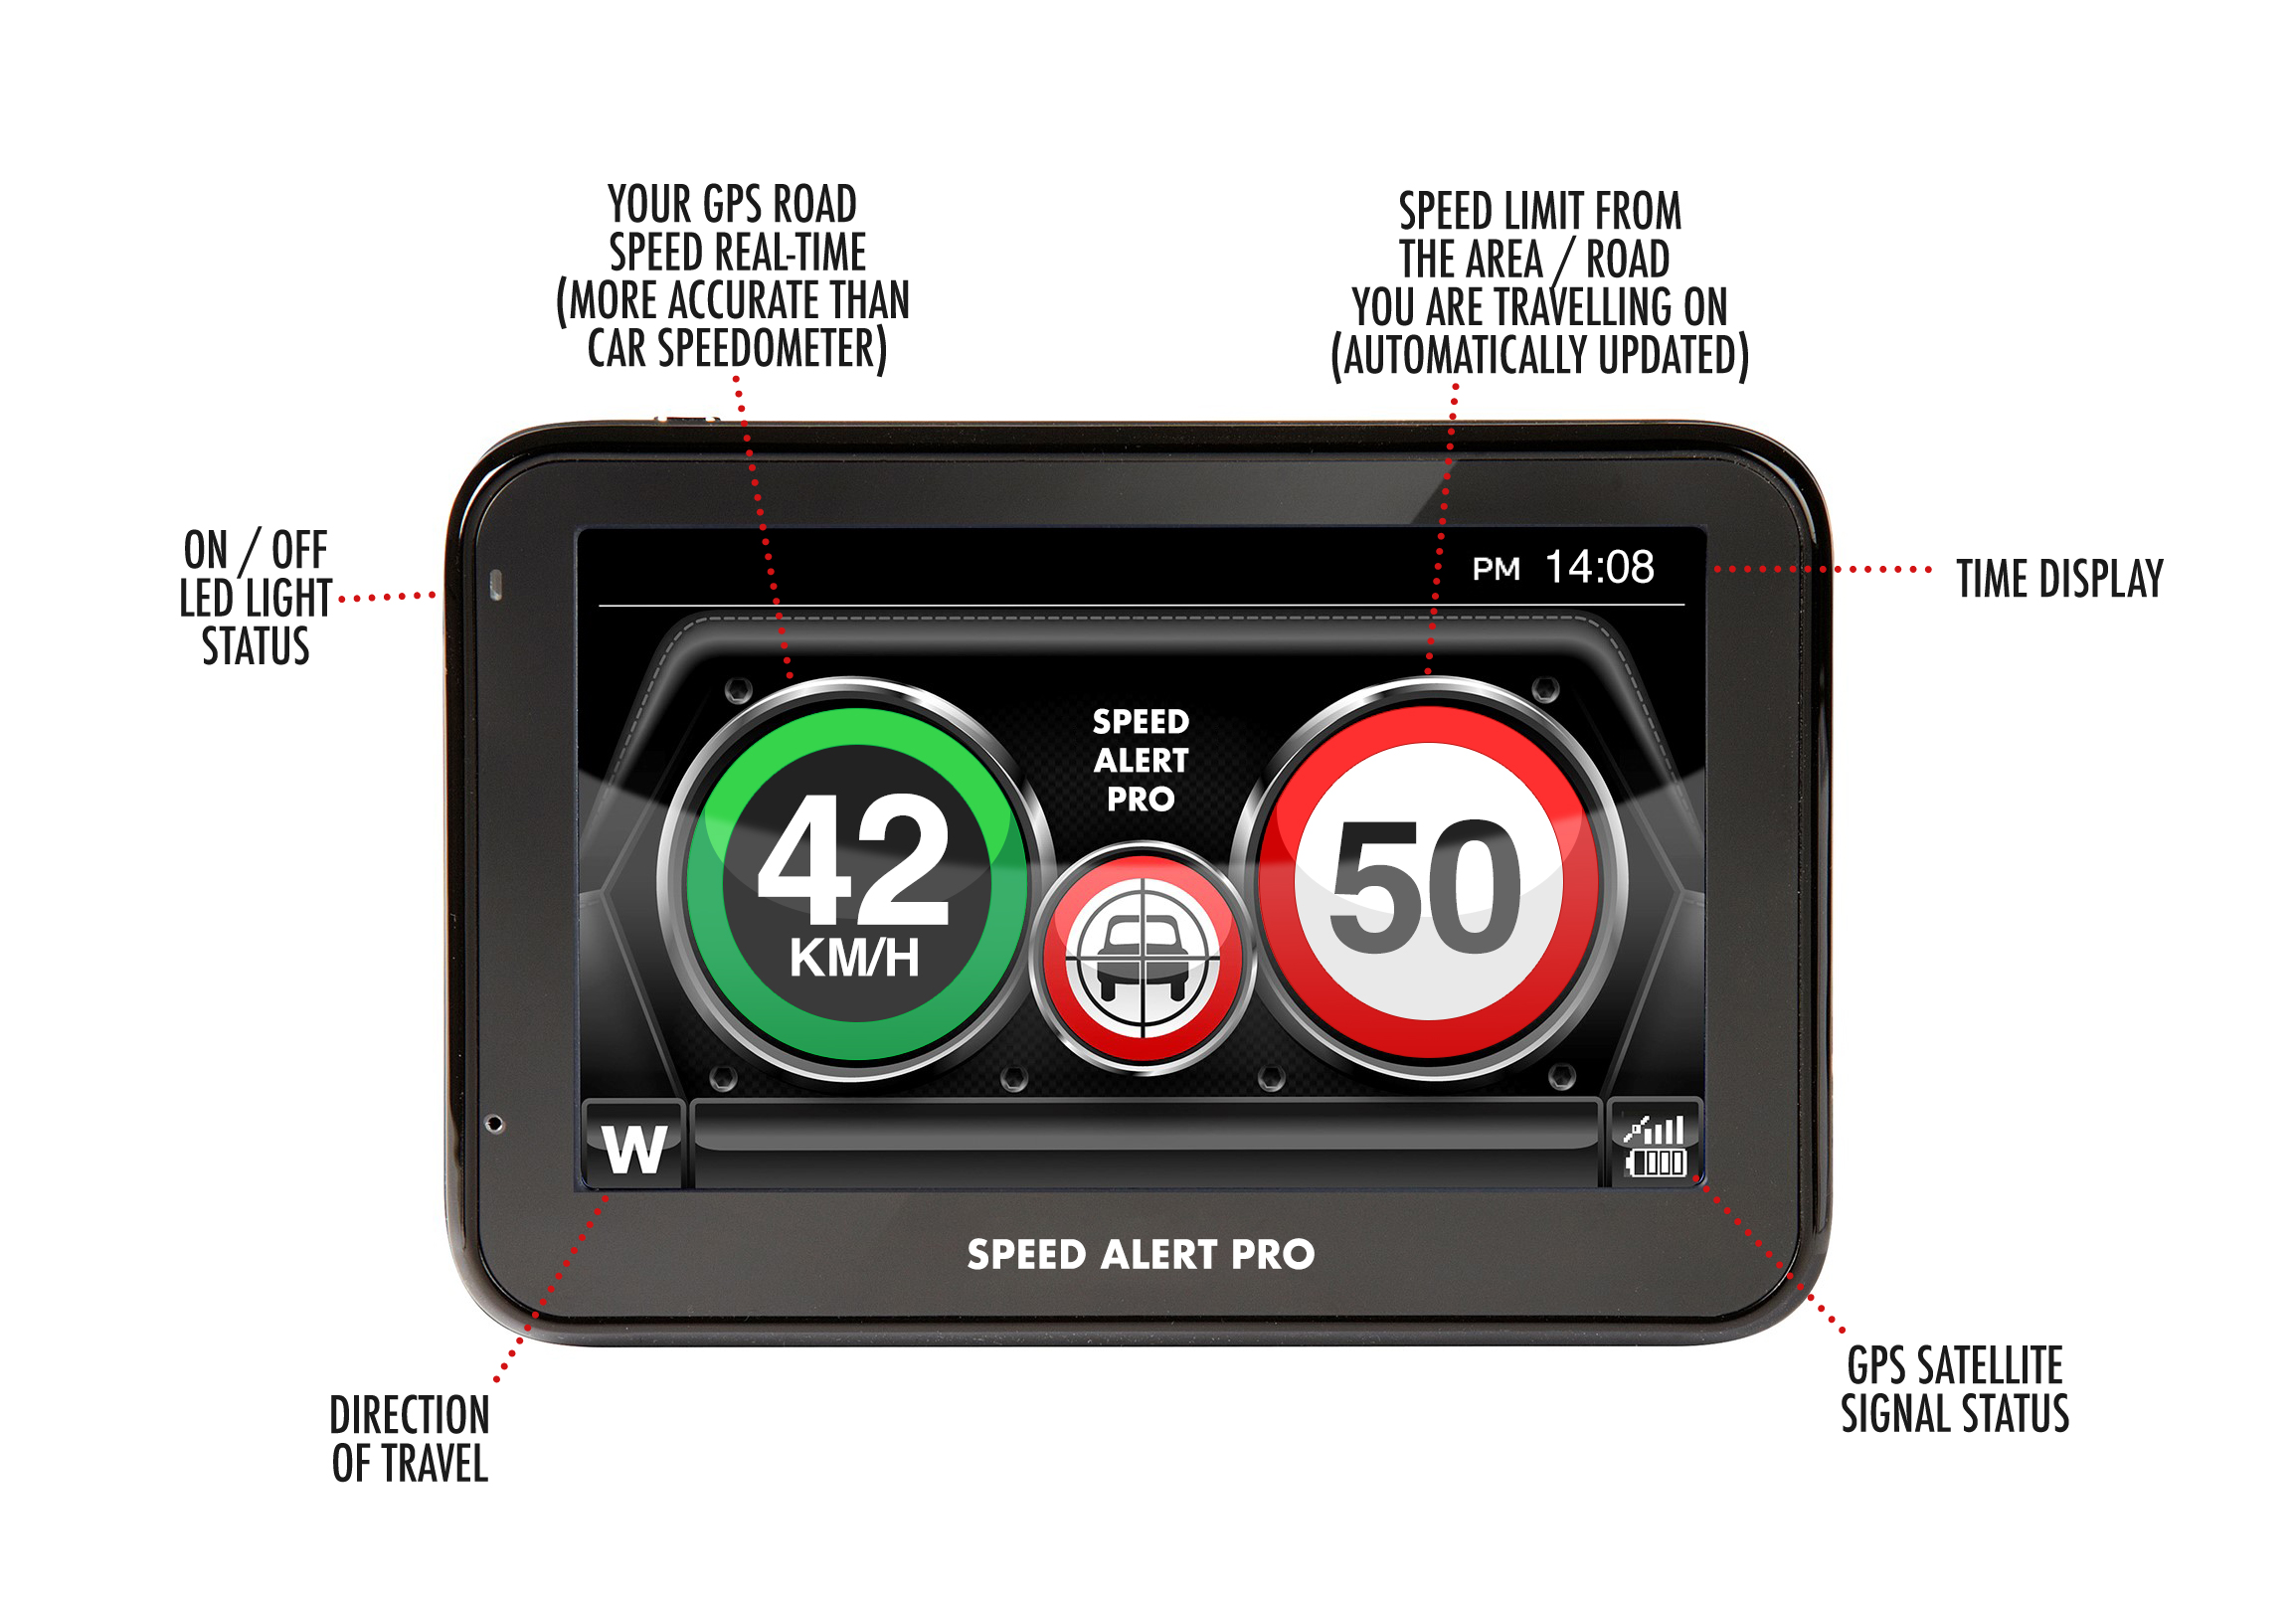 SPEED ALERT PRO DISPLAY DESCRIPTION